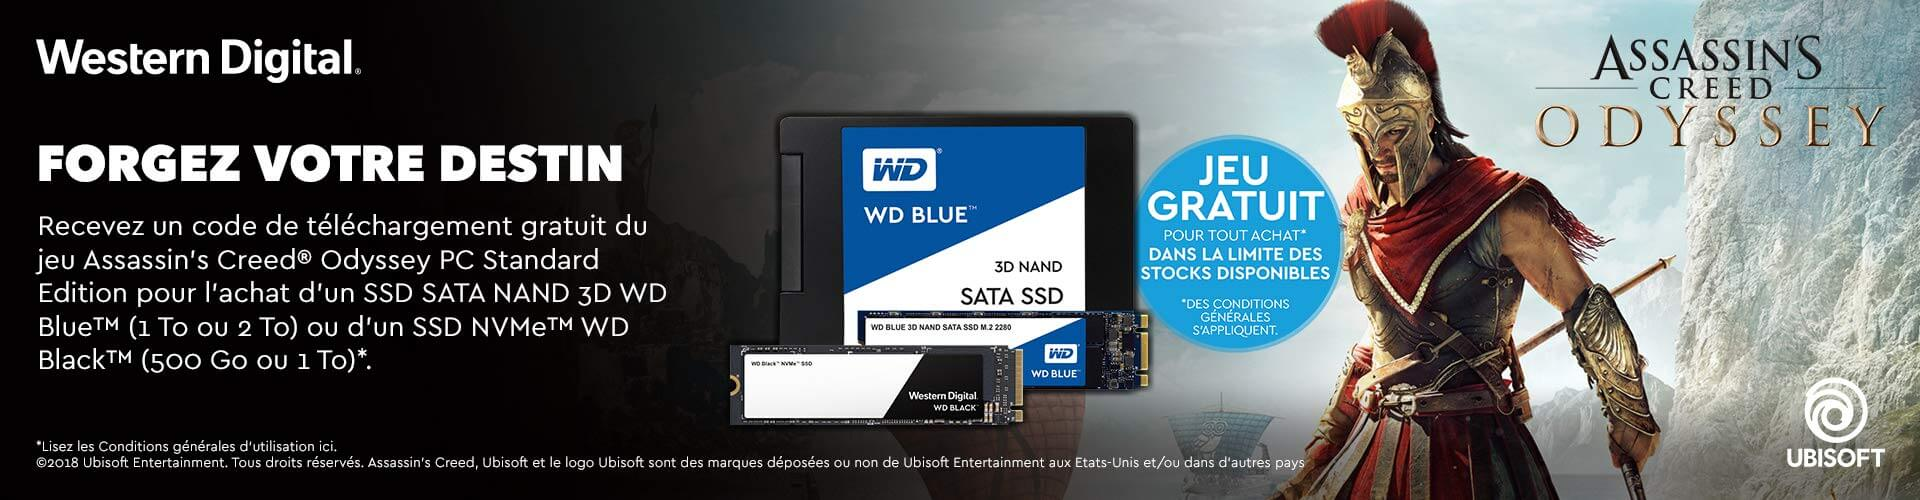 SSD Western Digital : Assassin's Creed Odyssey offert pour tout achat